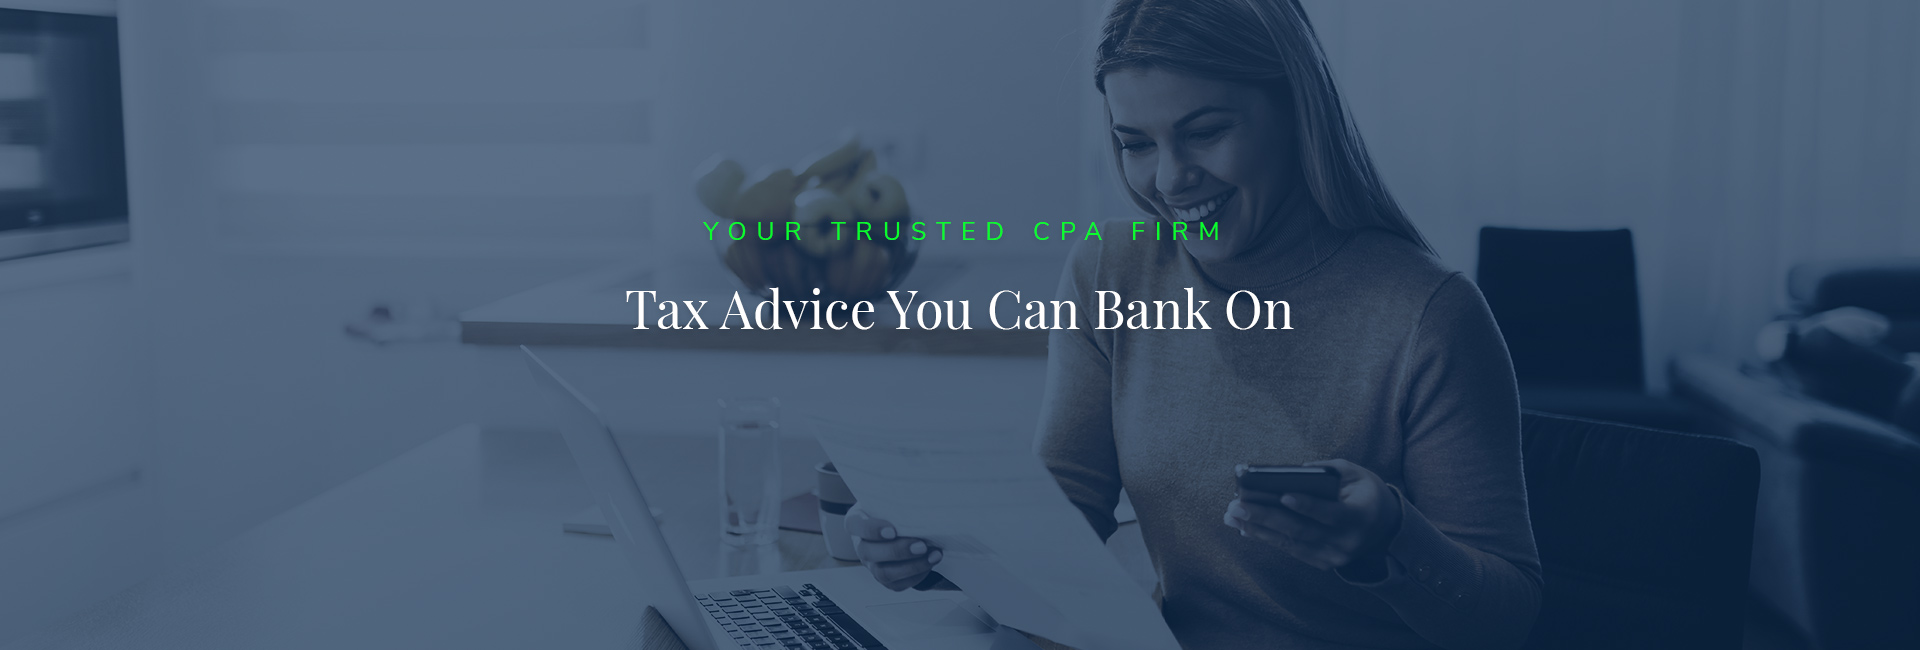 Kate Smith CPA Tax Services